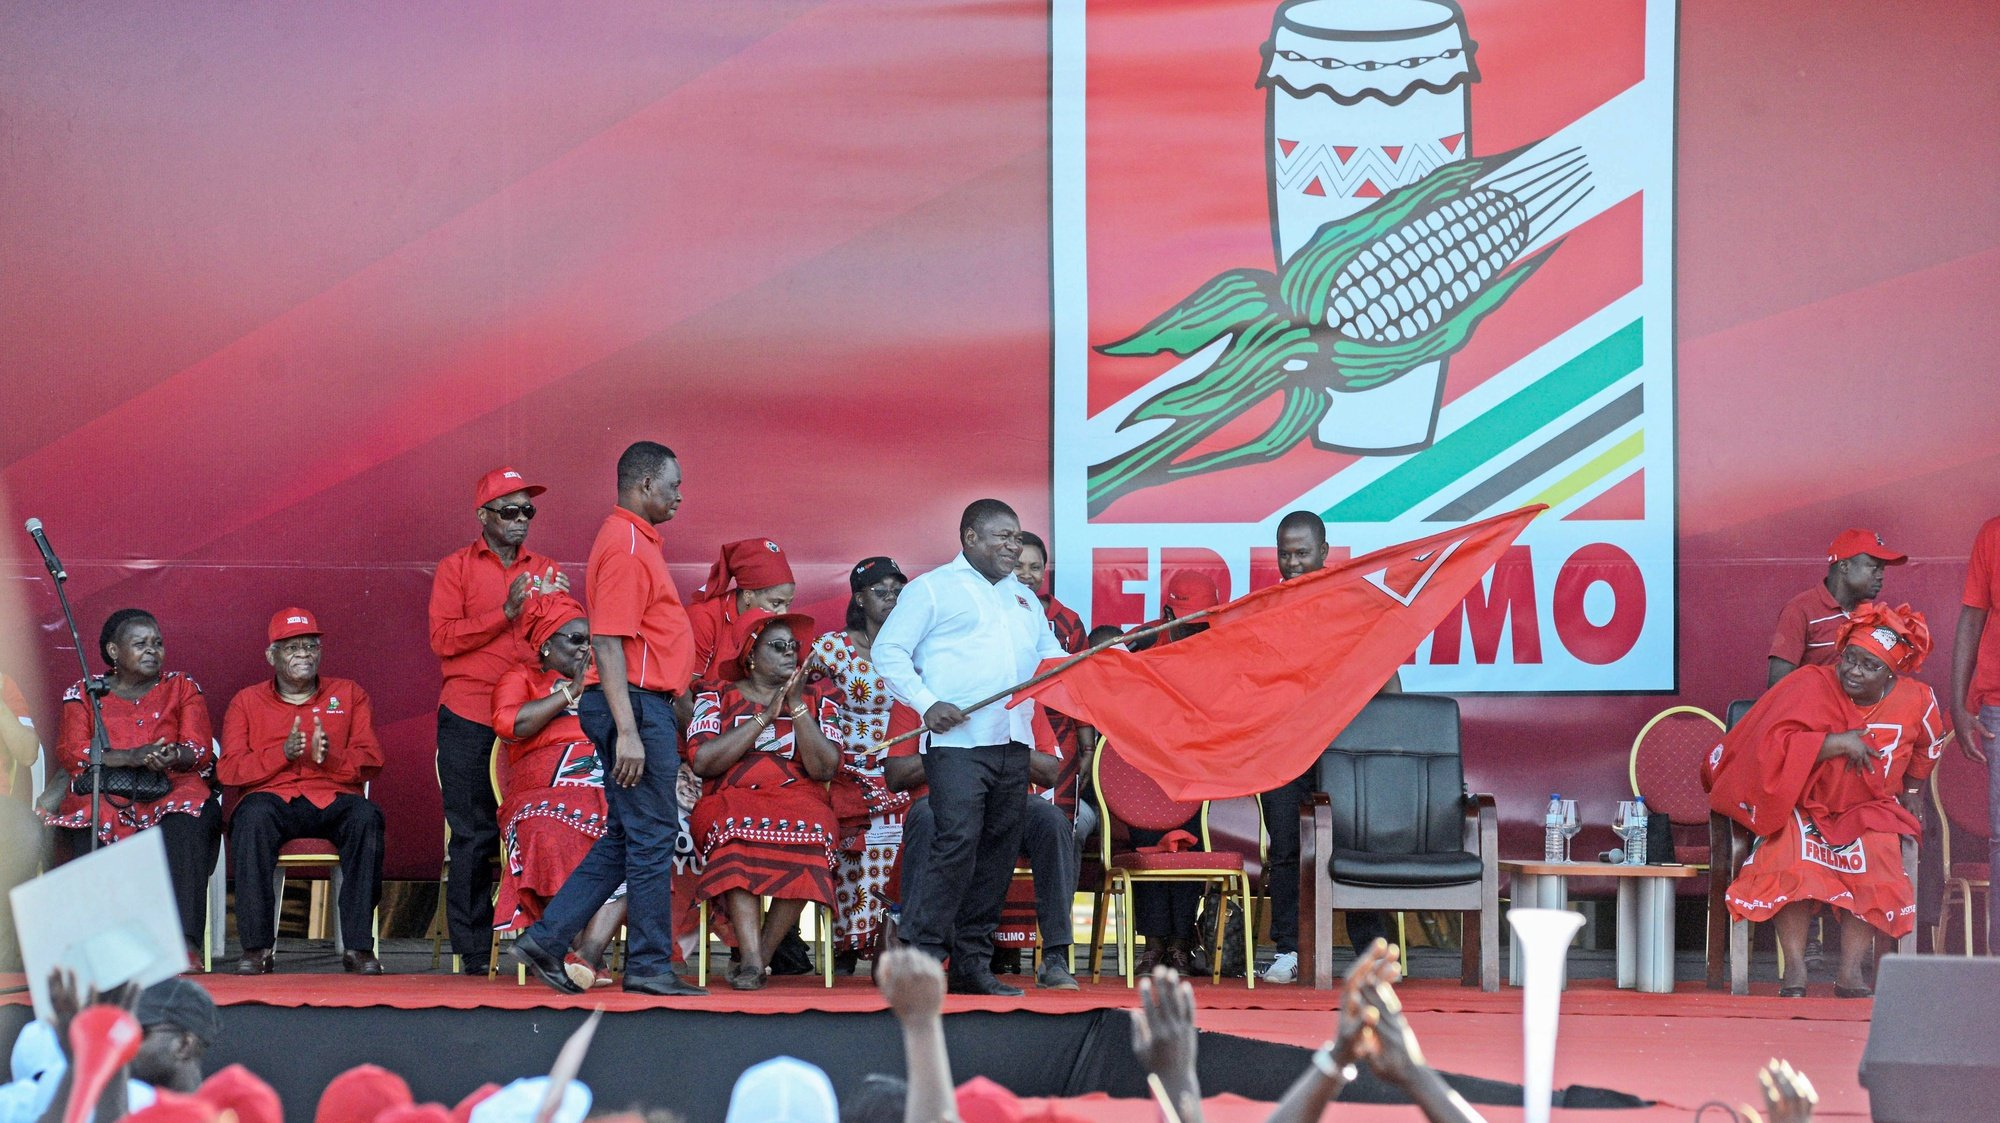 epa07915938 The President of Mozambique Liberation Front (Frelimo) and presidential candidate Filipe Nyusi attends a rally on the last day of the campaign, in Matola, outskirts of Maputo, Mozambique, 12 October 2019. Elections will be held on 15 October.  EPA/ANTONIO SILVA